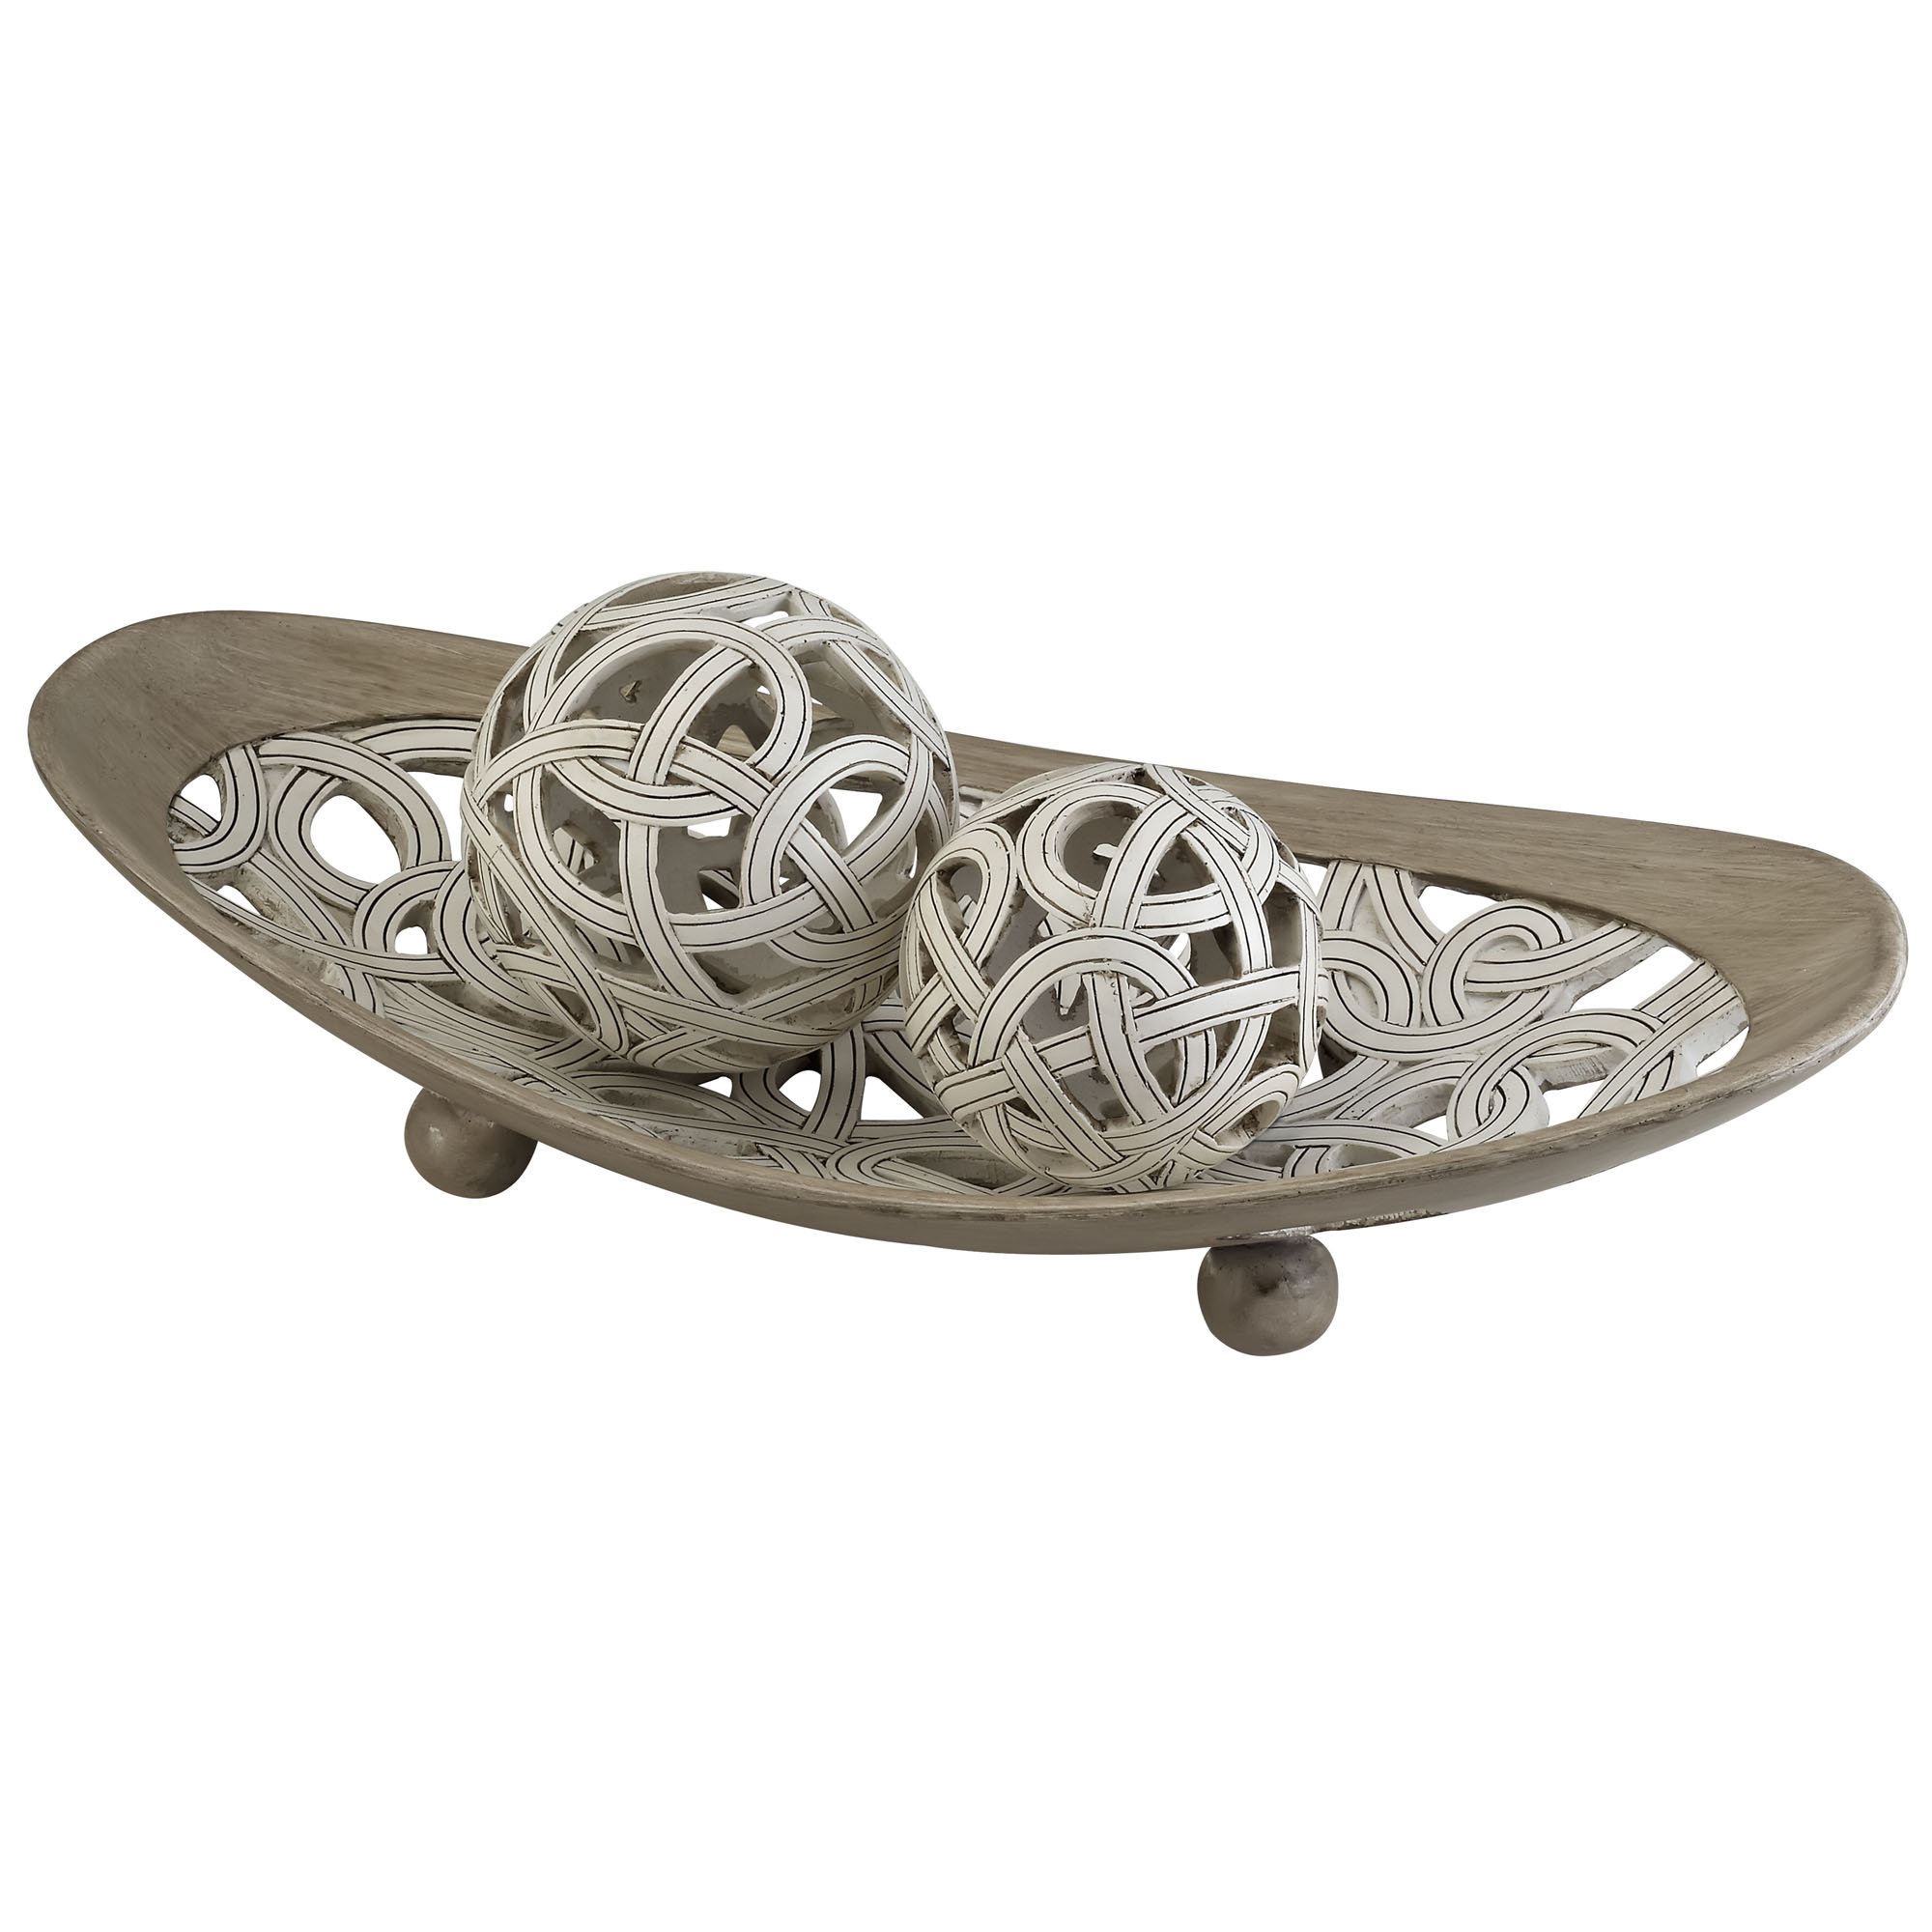 charming decorative orbs in wheat with matching bowl for charming table accessories ideas